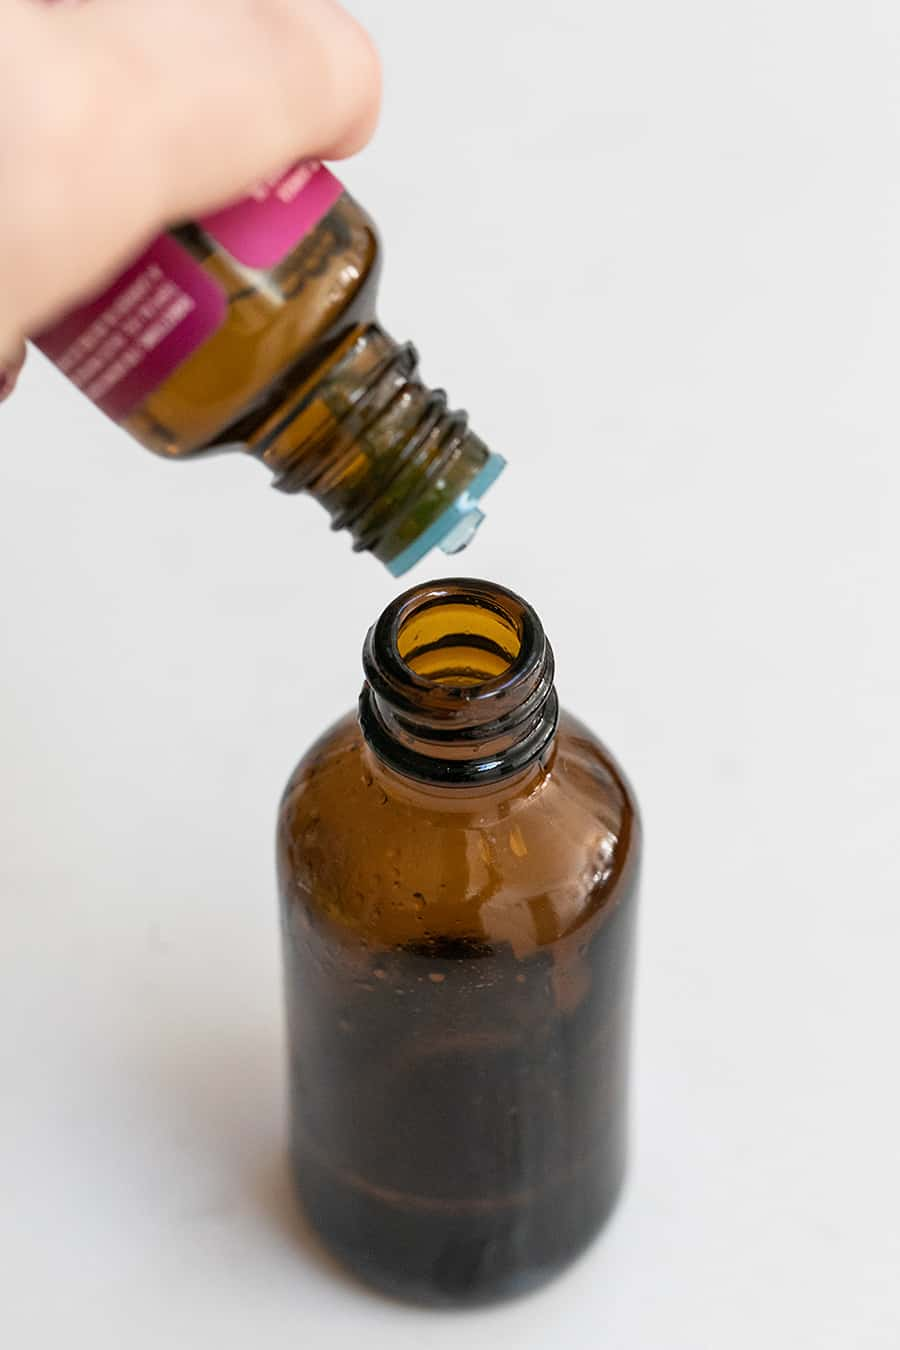 Lavender Essential Oil to Make a Natural Linen Spray